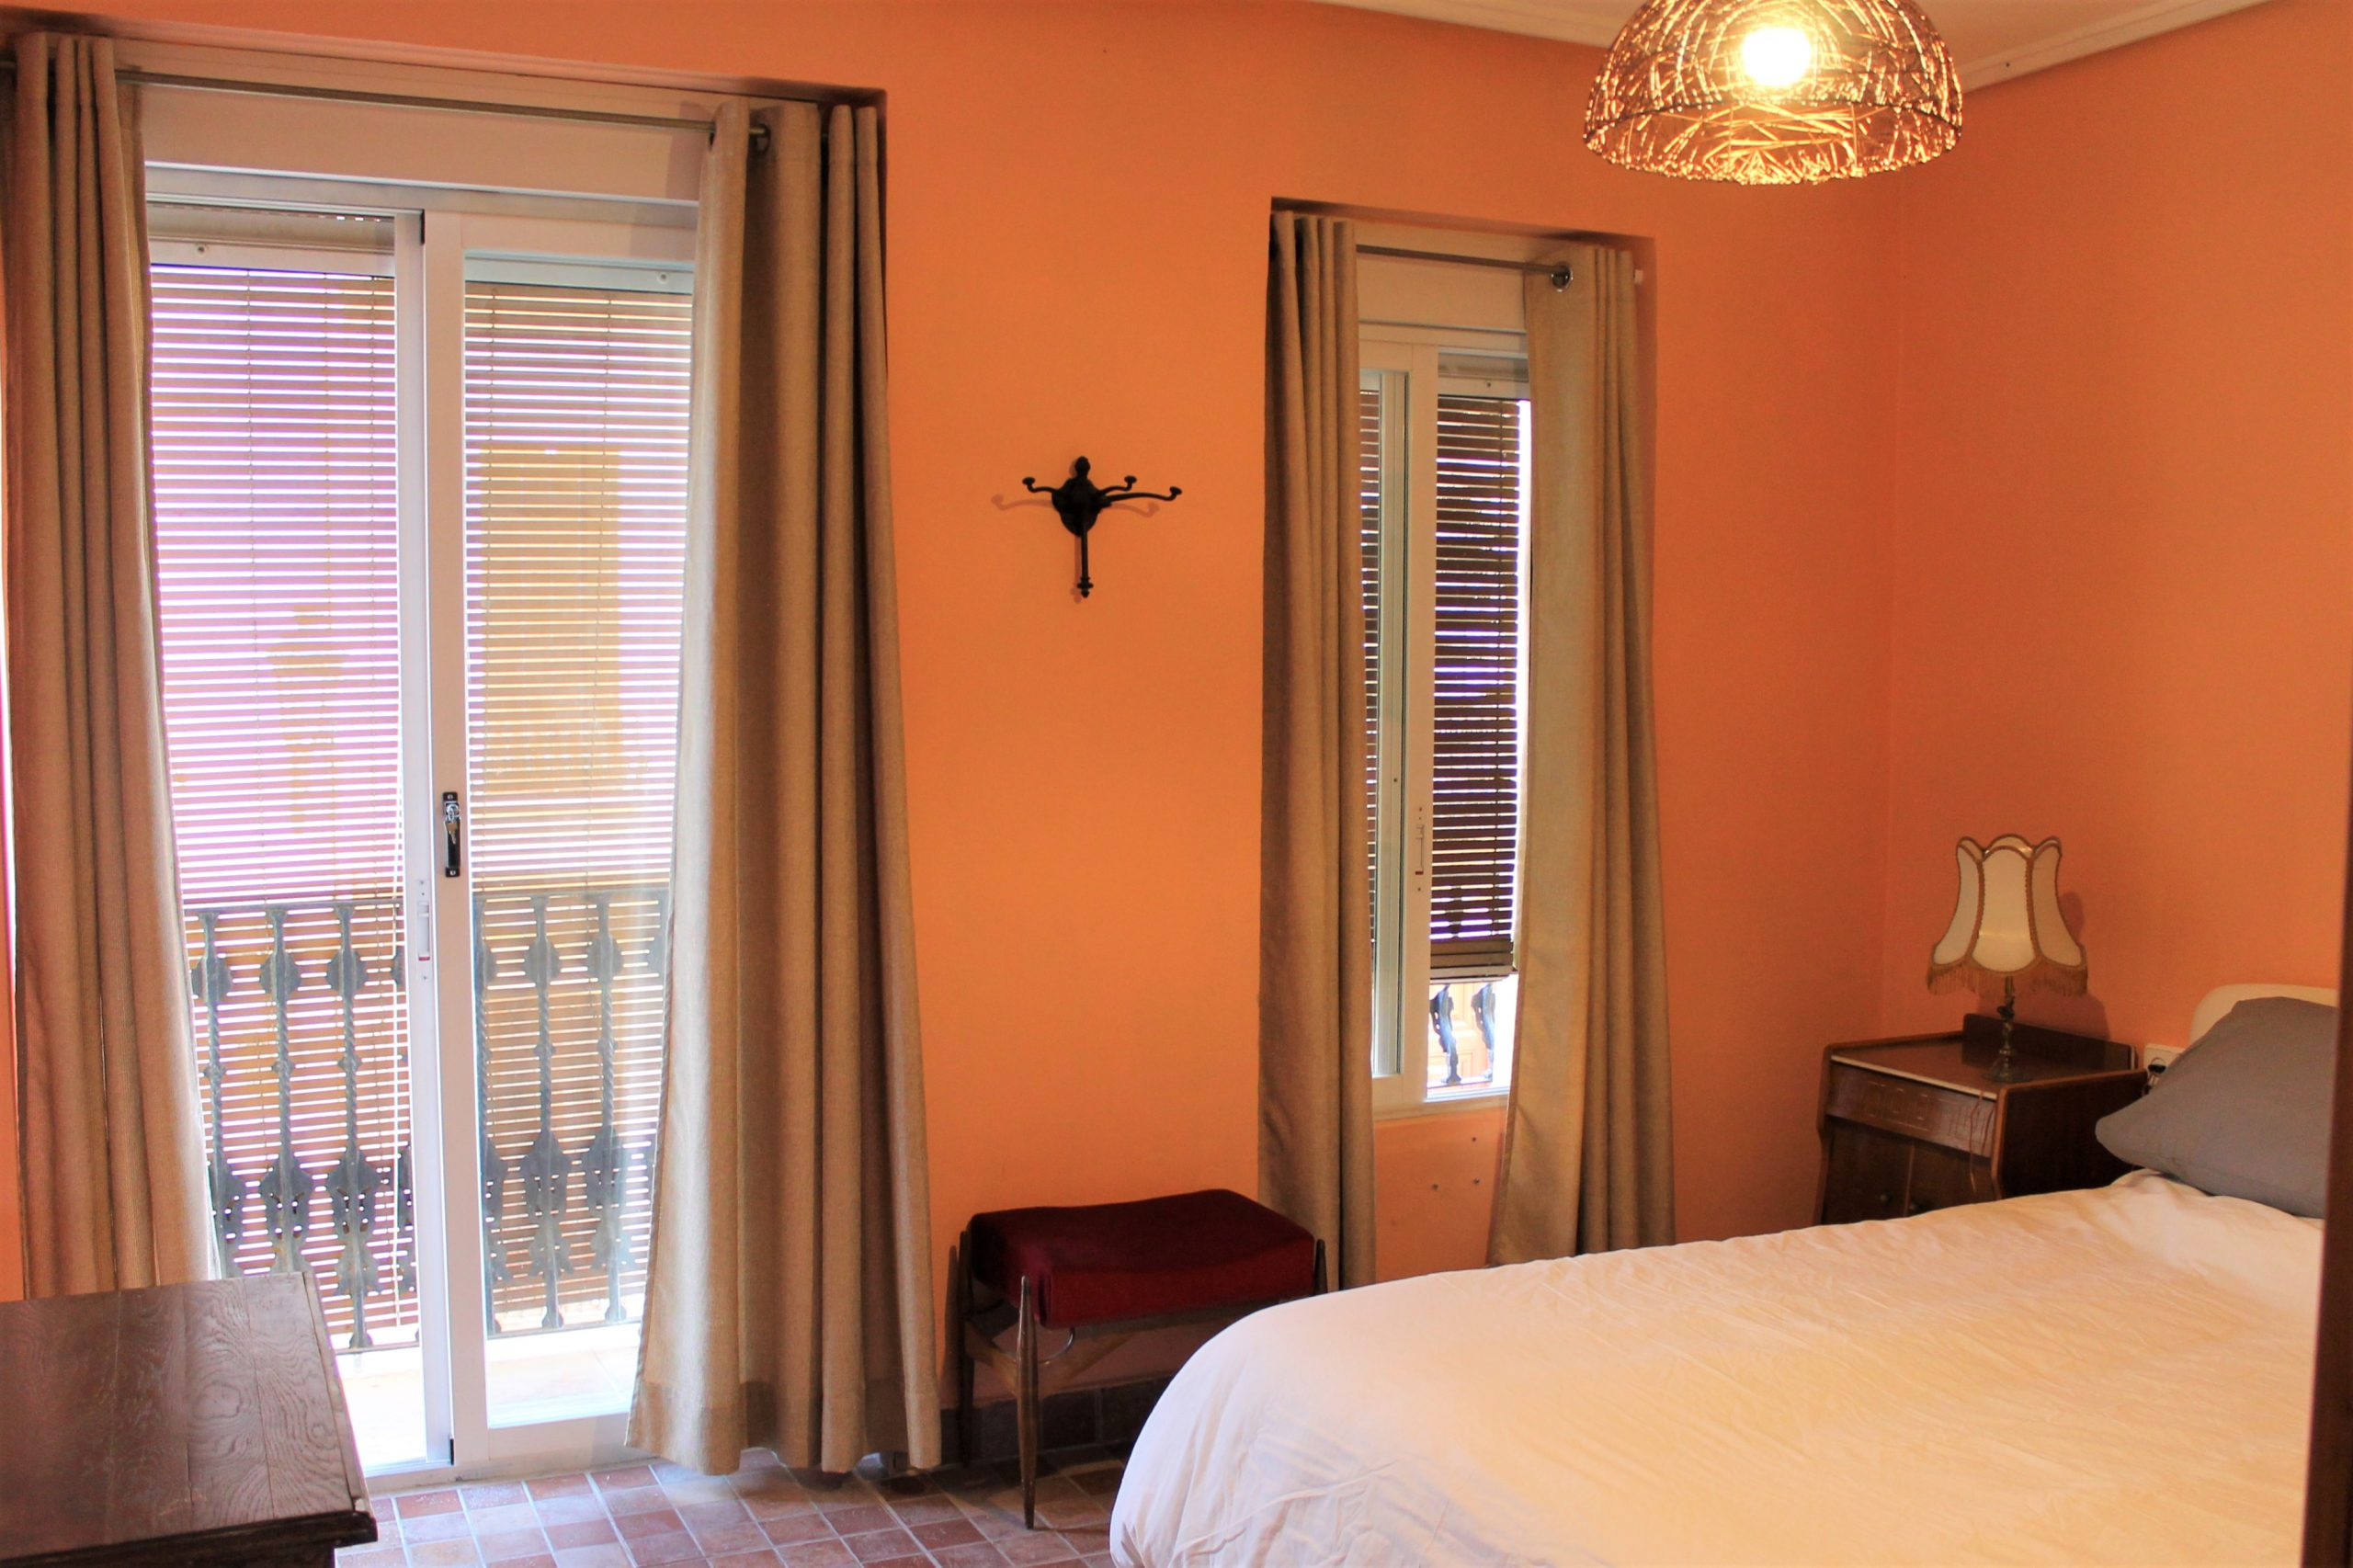 Nador – Fully equipped apartment in Valencia for expats